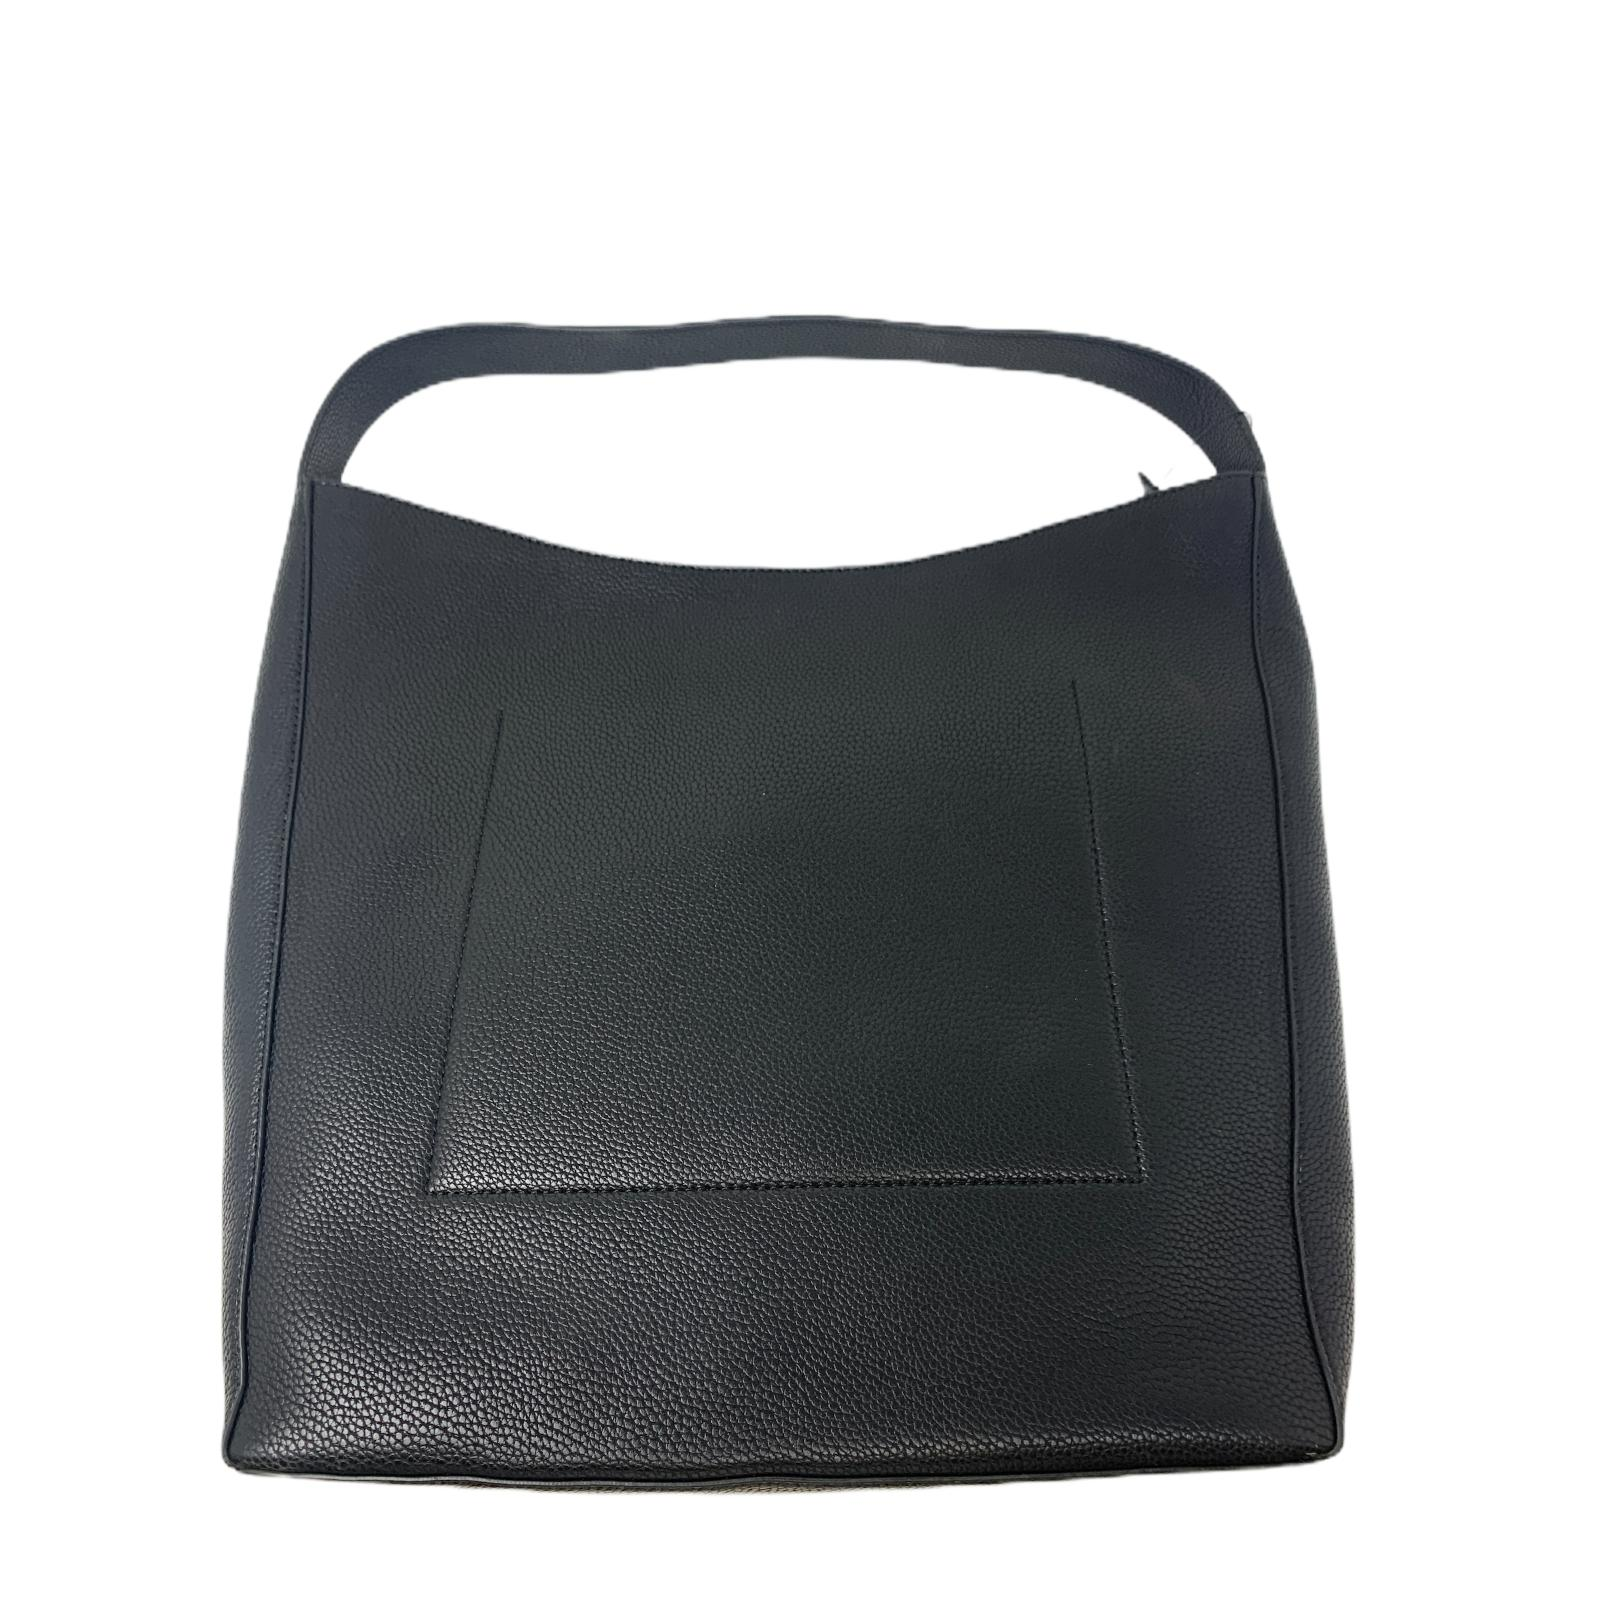 Borsa Calvin Klein Vertical Shopper Bag Total Black